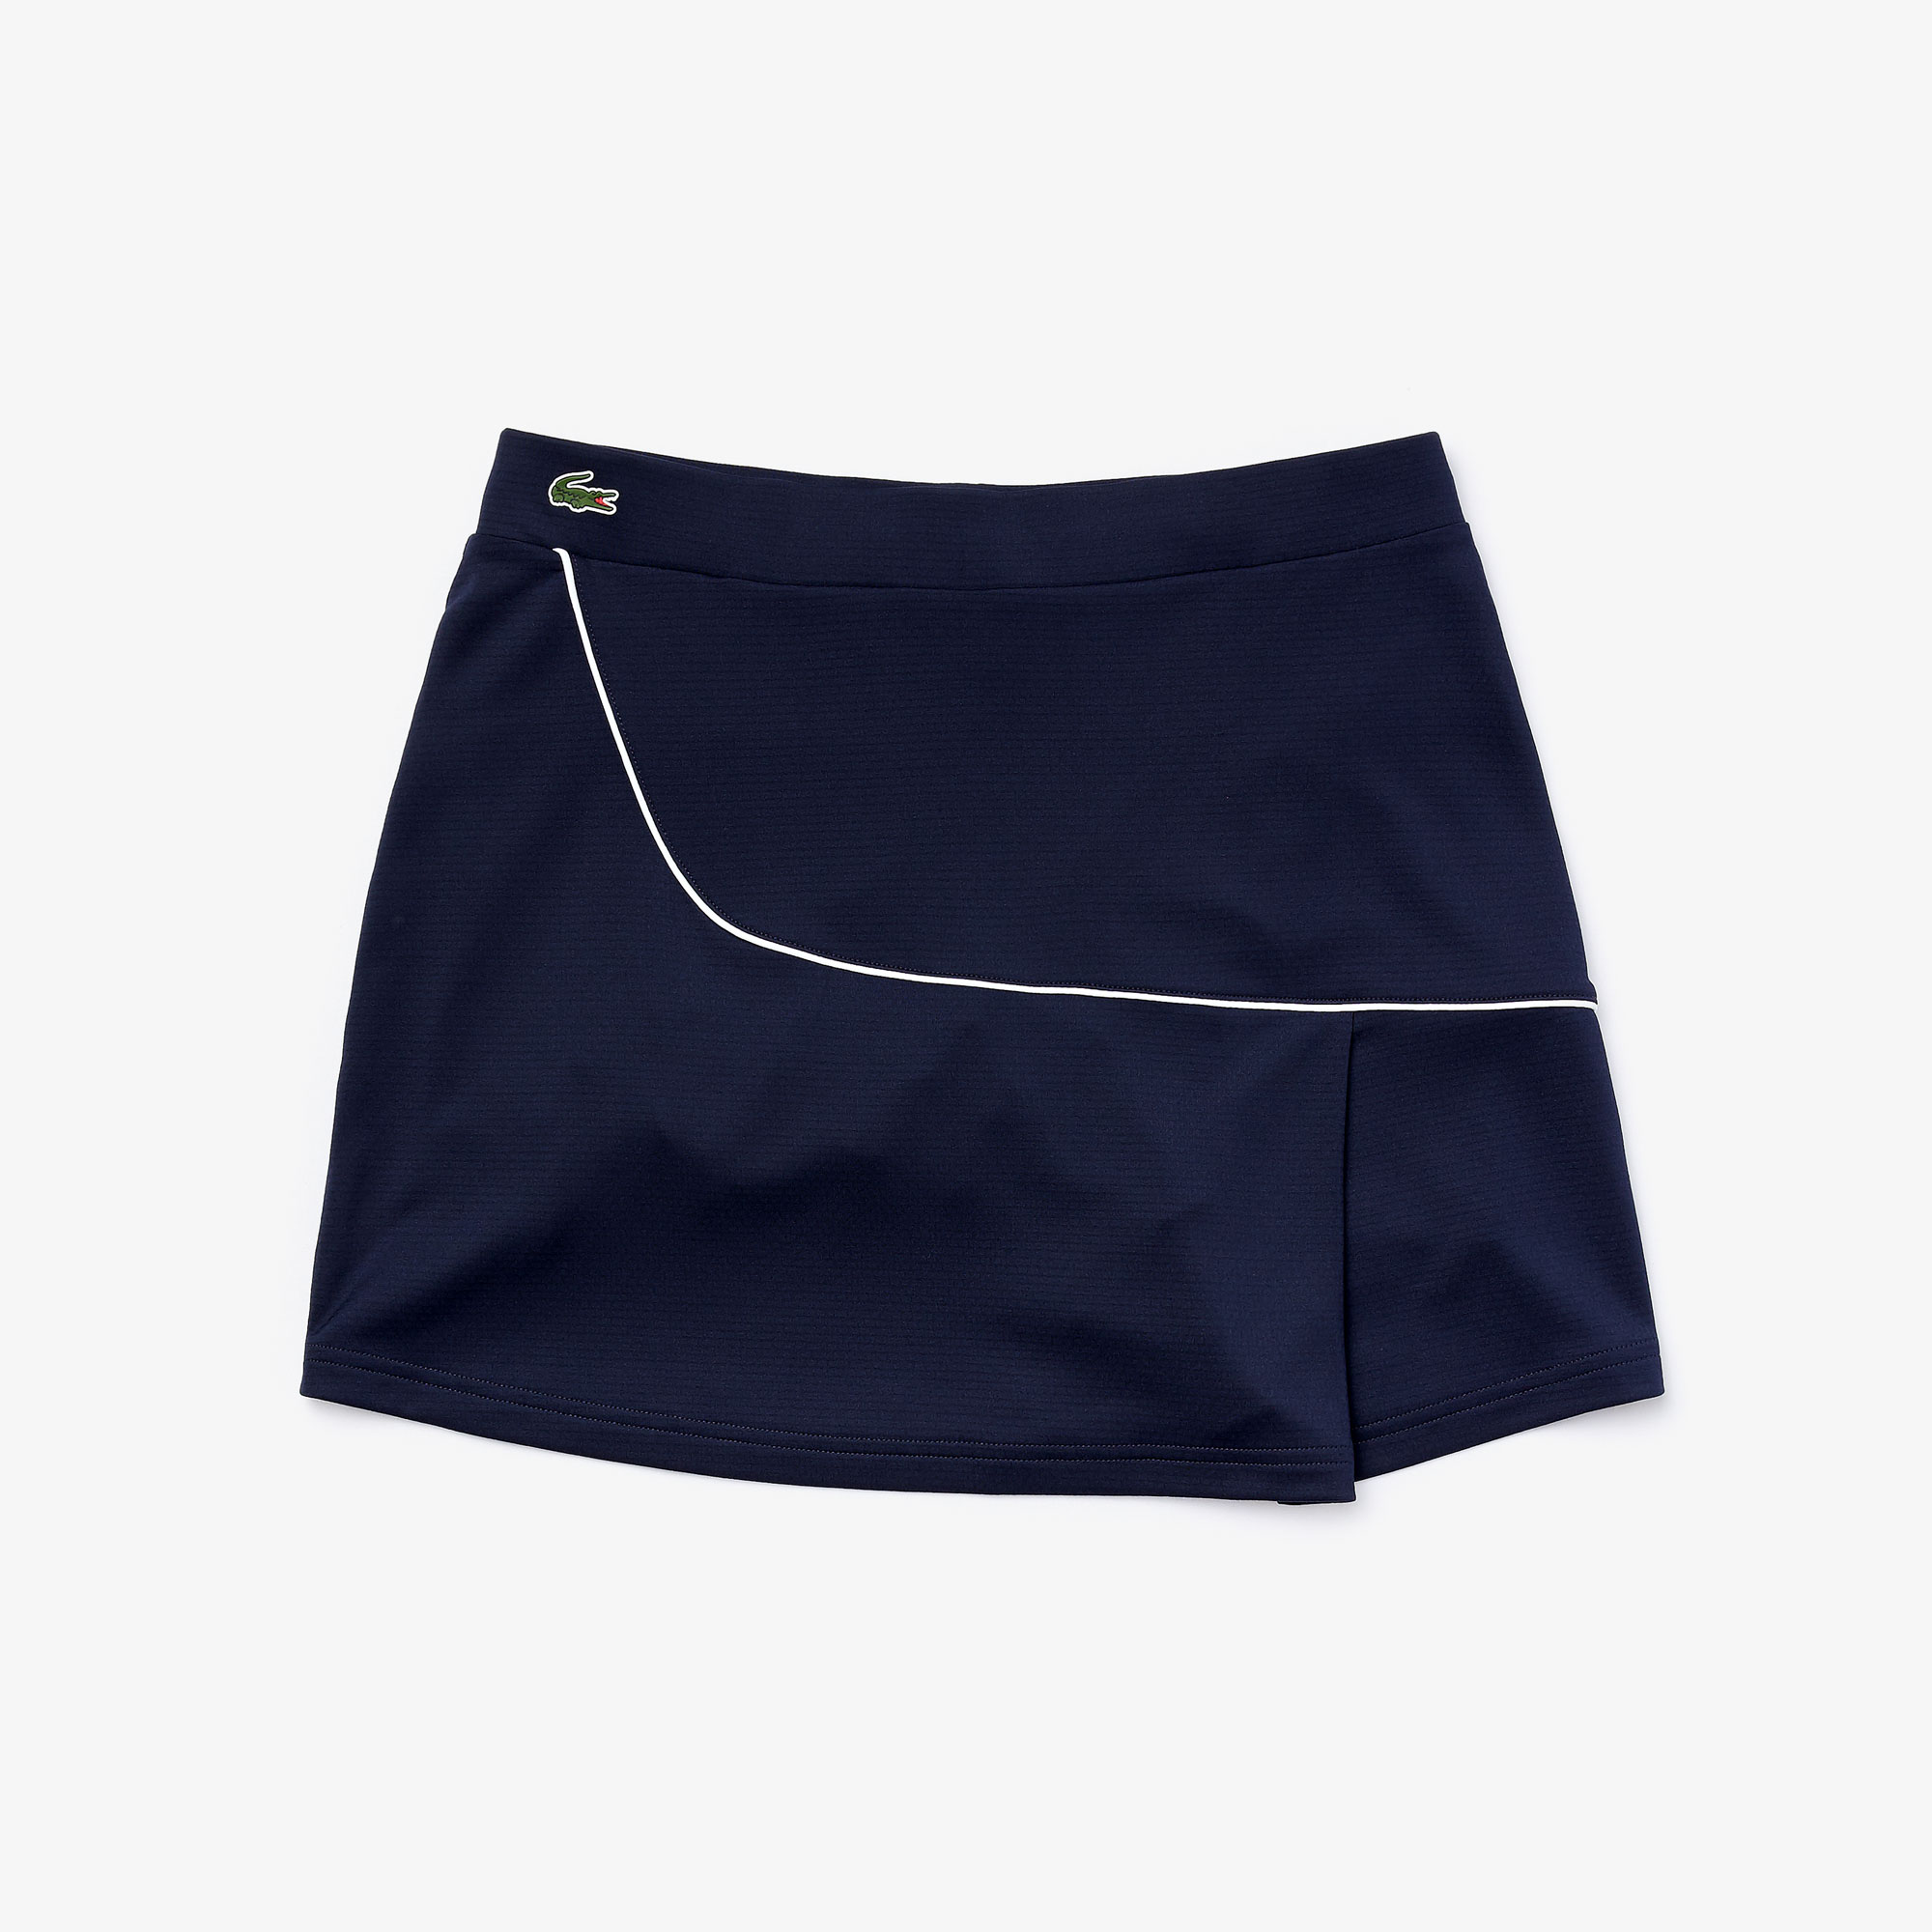 Women's Lacoste SPORT Built-in Shorty Breathable Stretch Golf Skirt